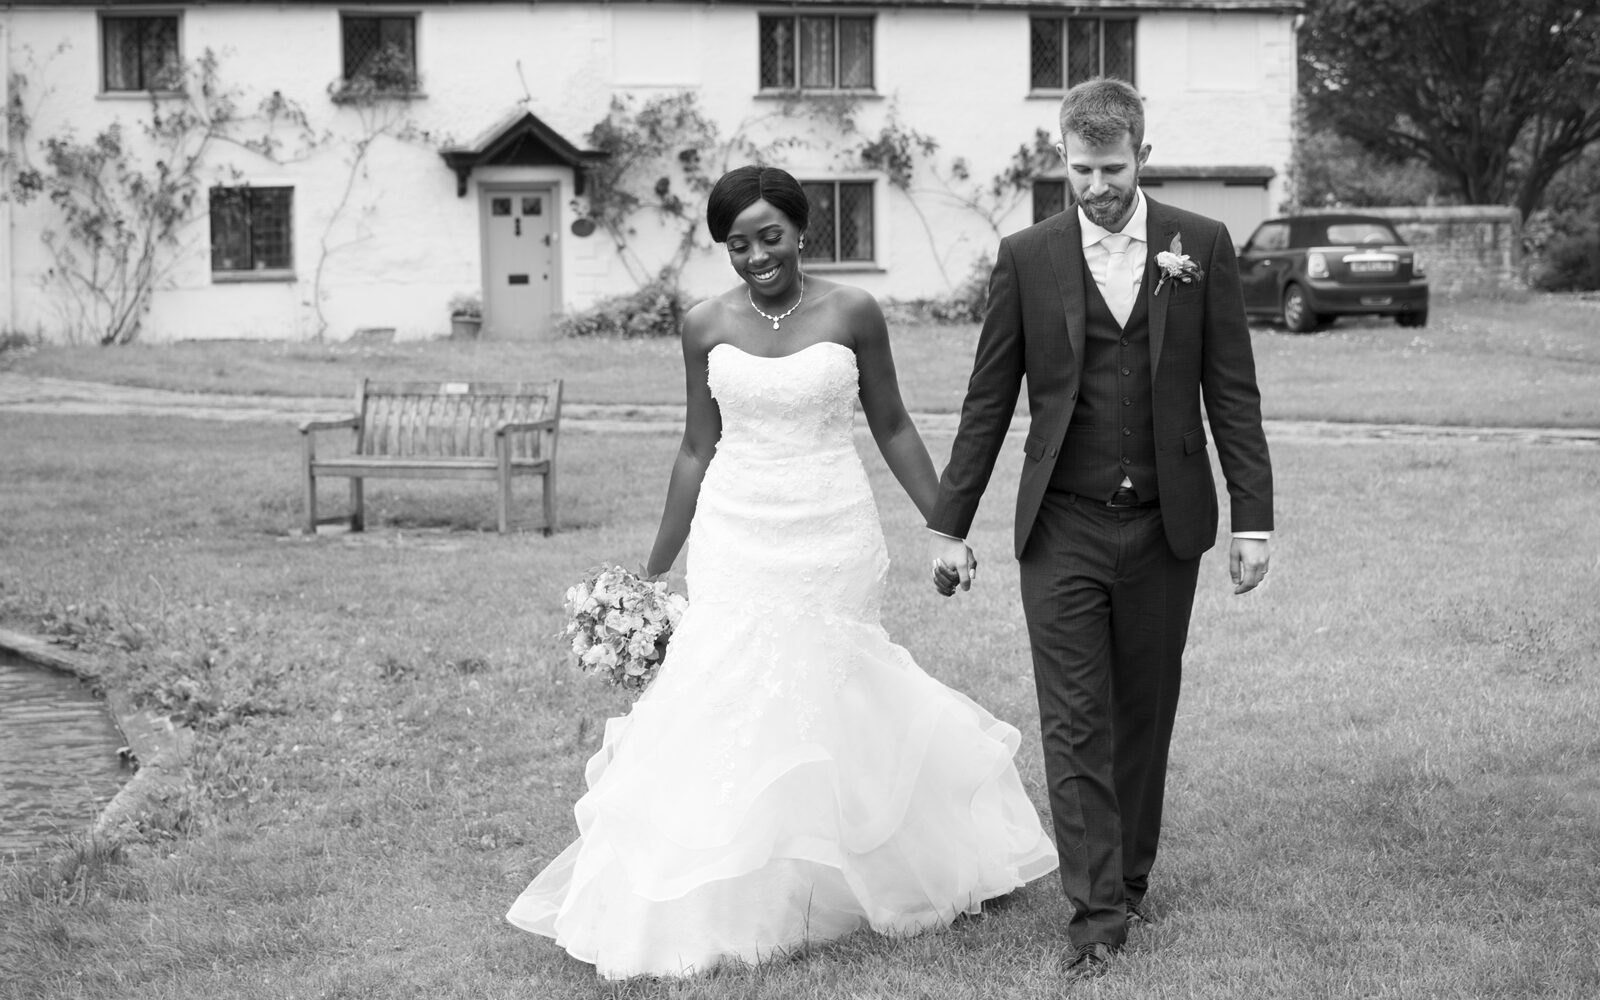 Bride and groom walking together smiling. Captured by Kent wedding photographer, Victoria Green.